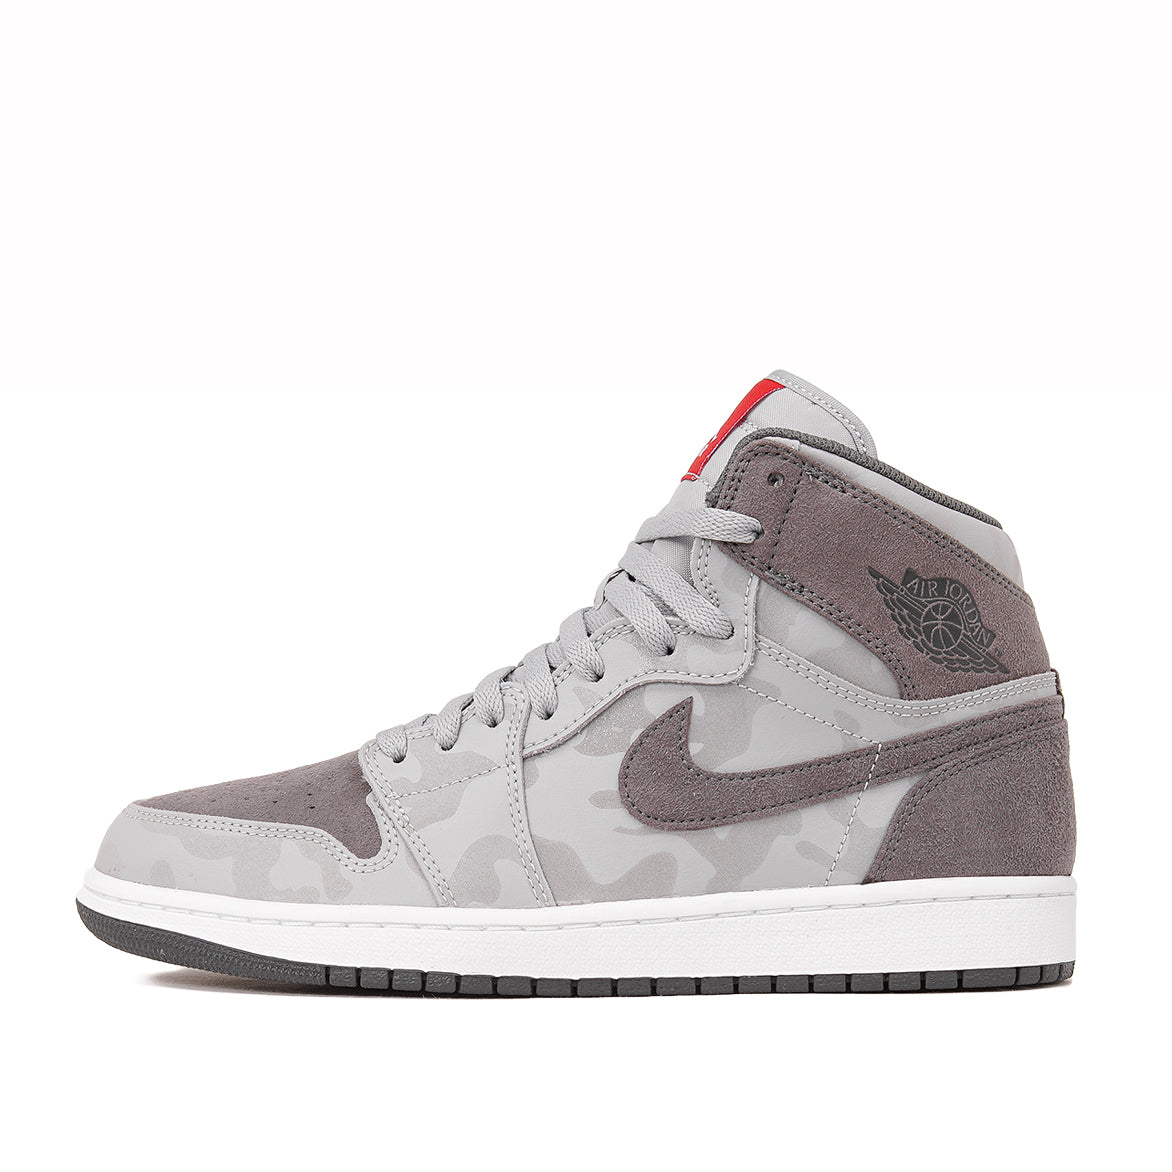 8d9699284425 AIR JORDAN 1 RETRO HIGH PREMIUM